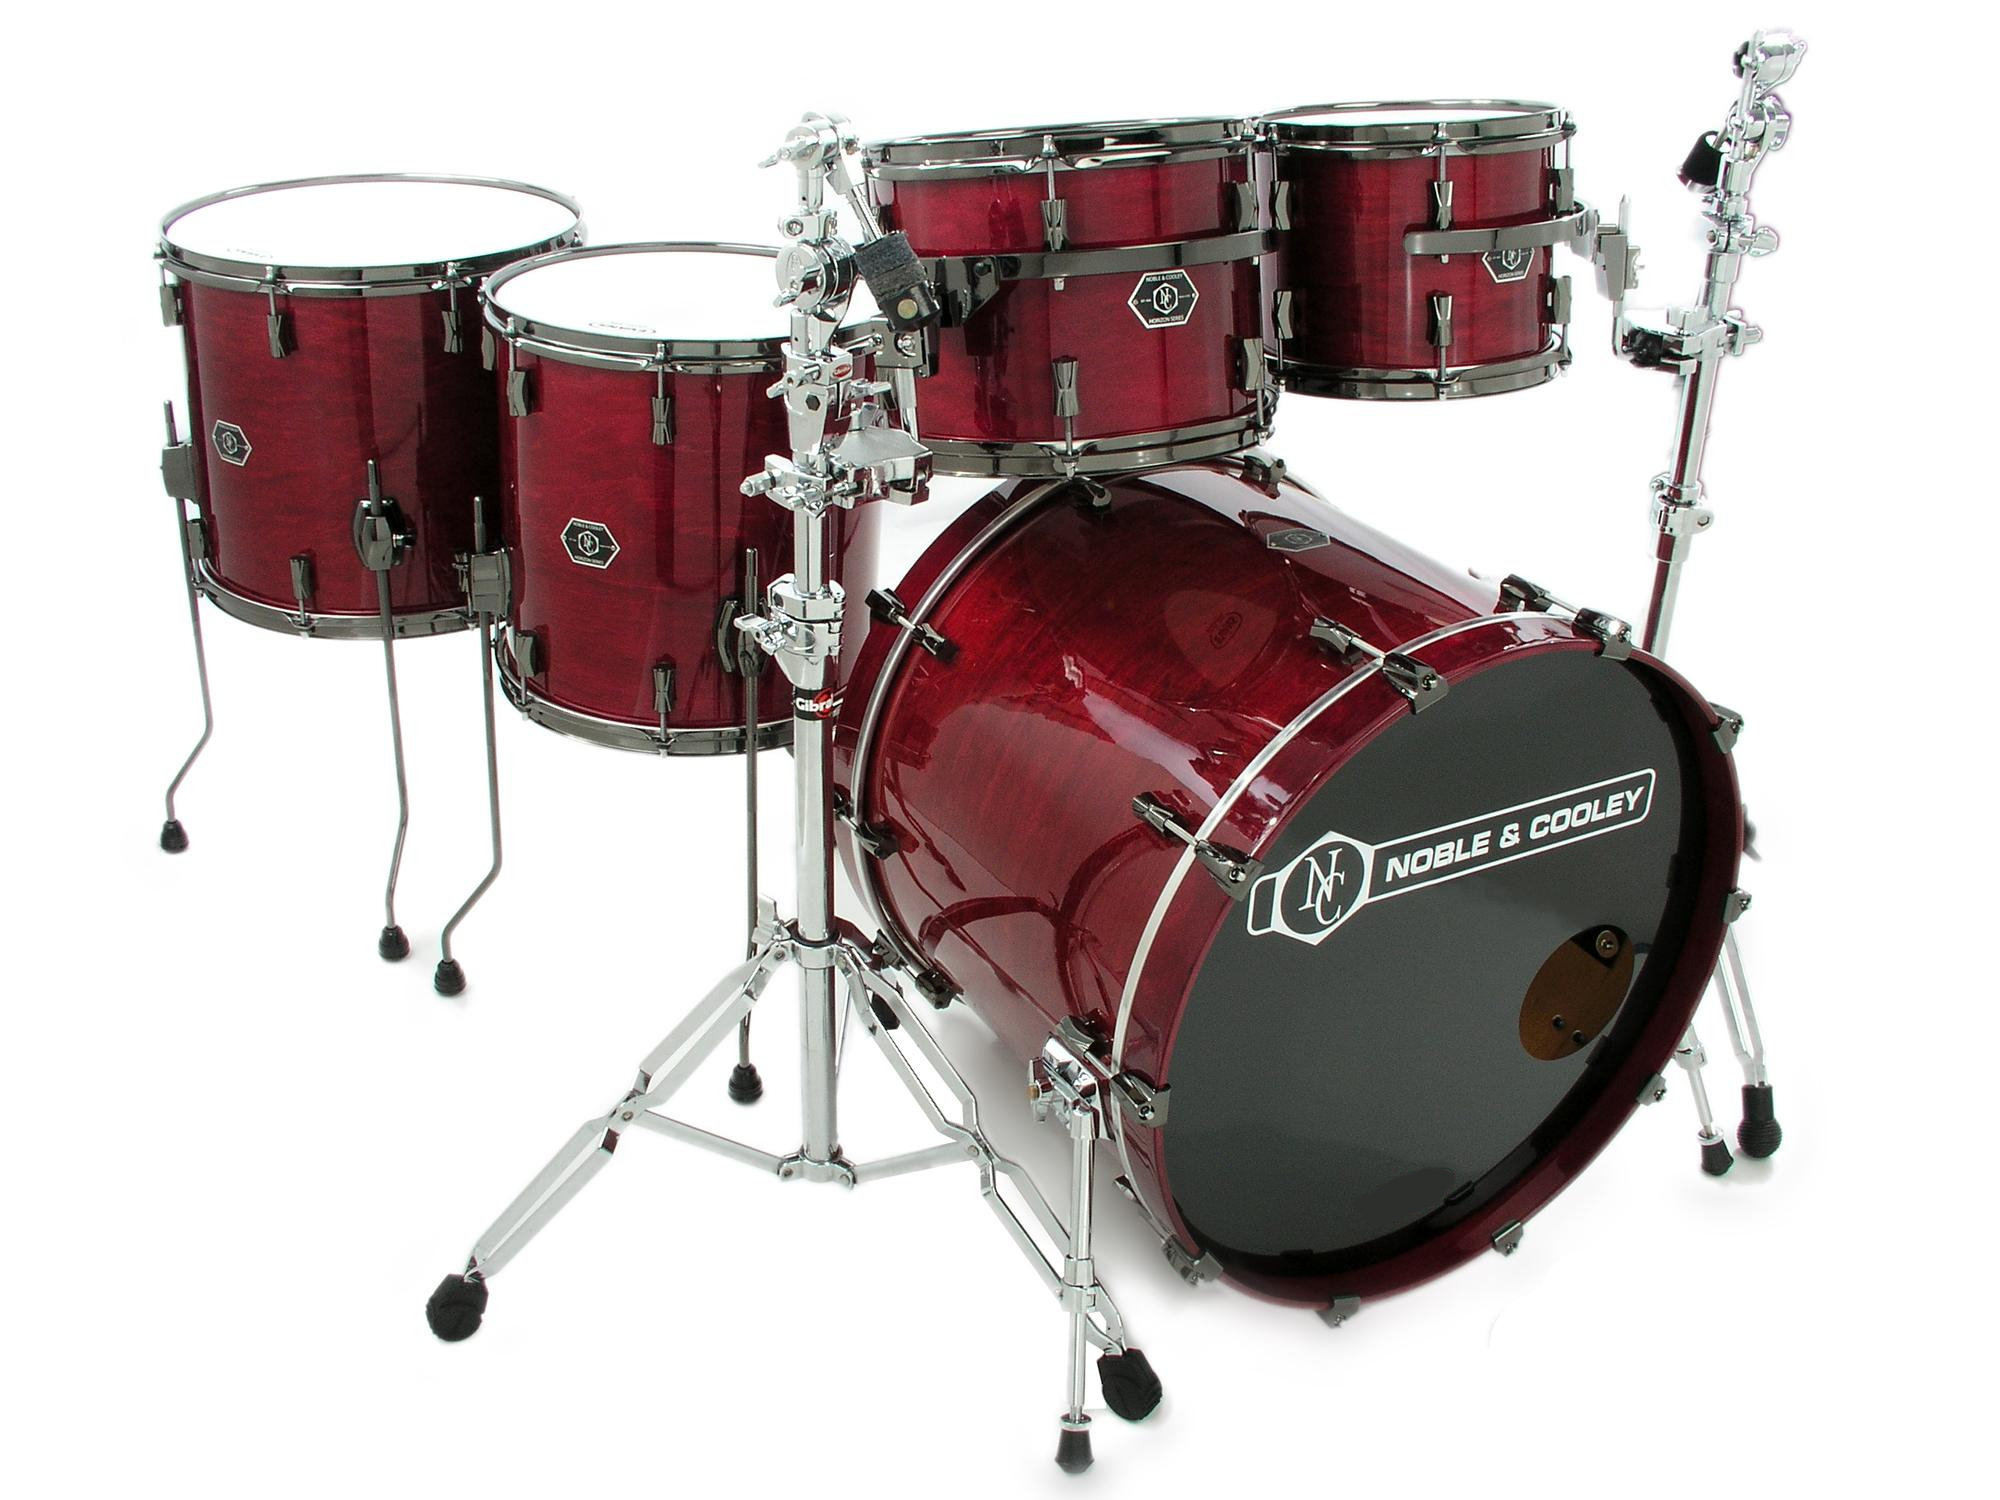 -15469-15469-noble-cooley-5pc-horizon-drum-set-dark-cherry-gloss-black-15353213206-57